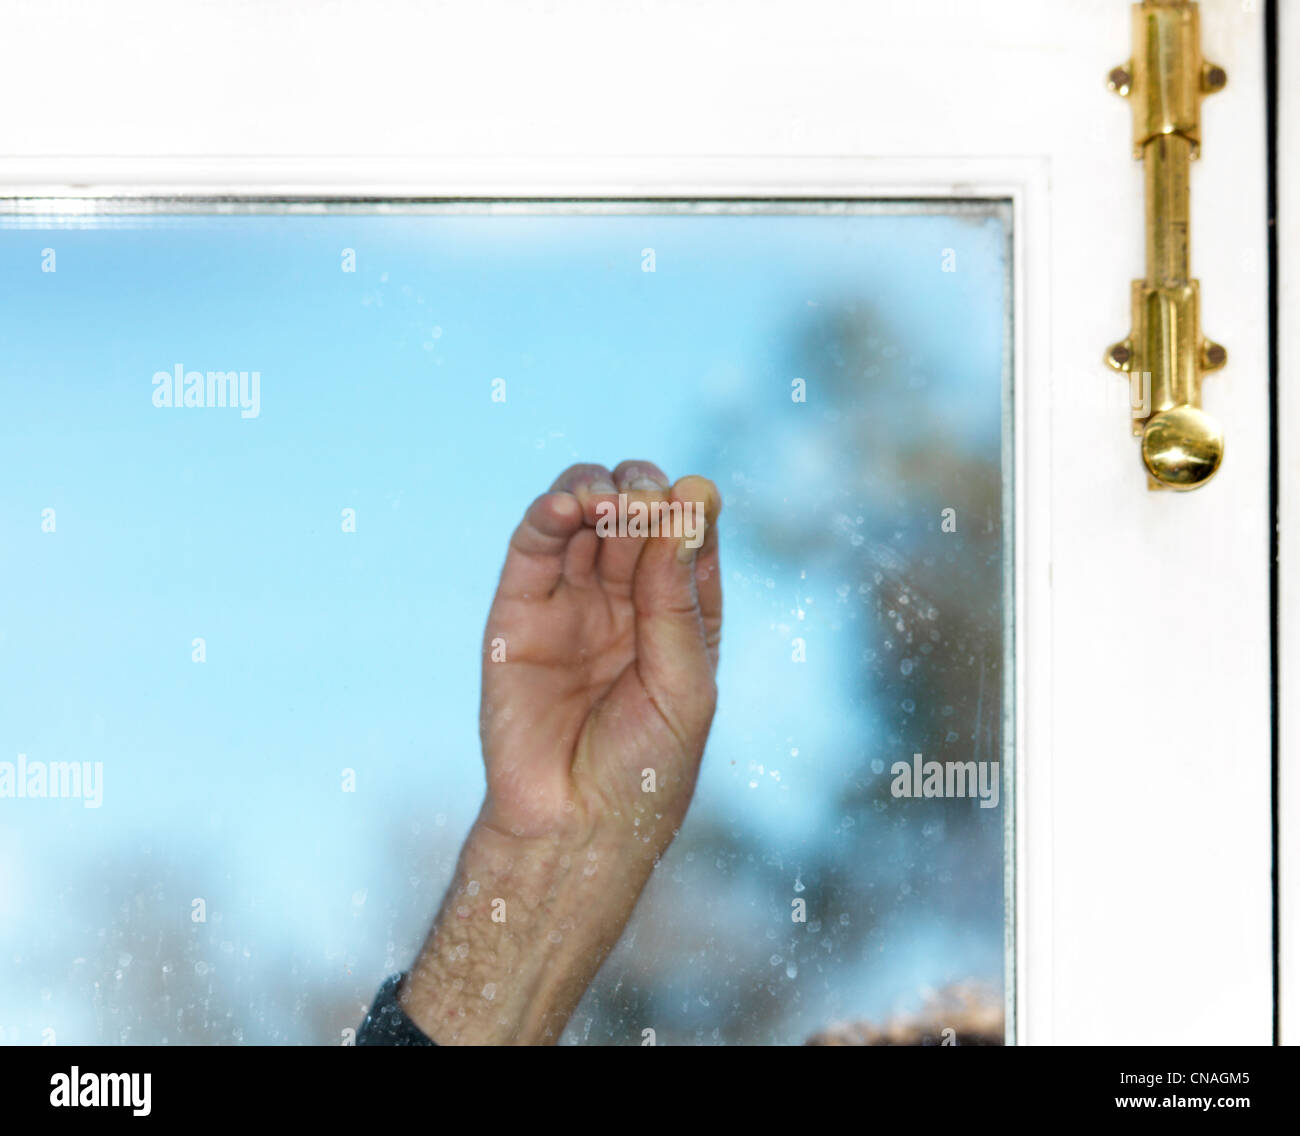 Fingers Tapping On Window - Stock Image